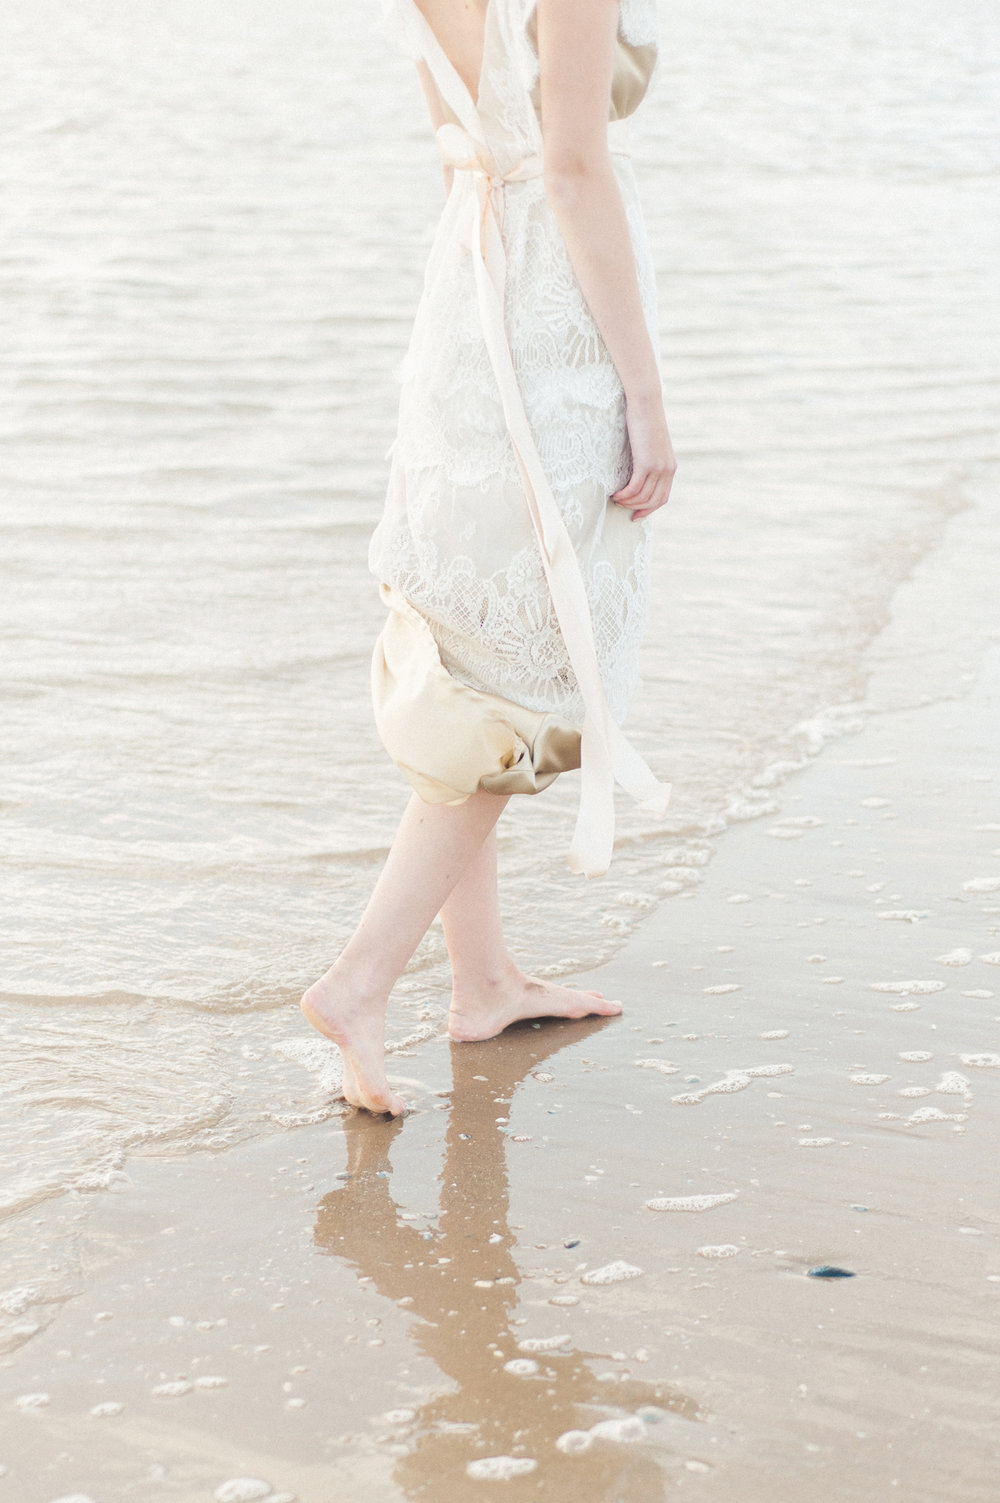 Kate-Beaumont-Wedding-Dresses-Formby-Beach-Emma-Pilkington-28.jpg